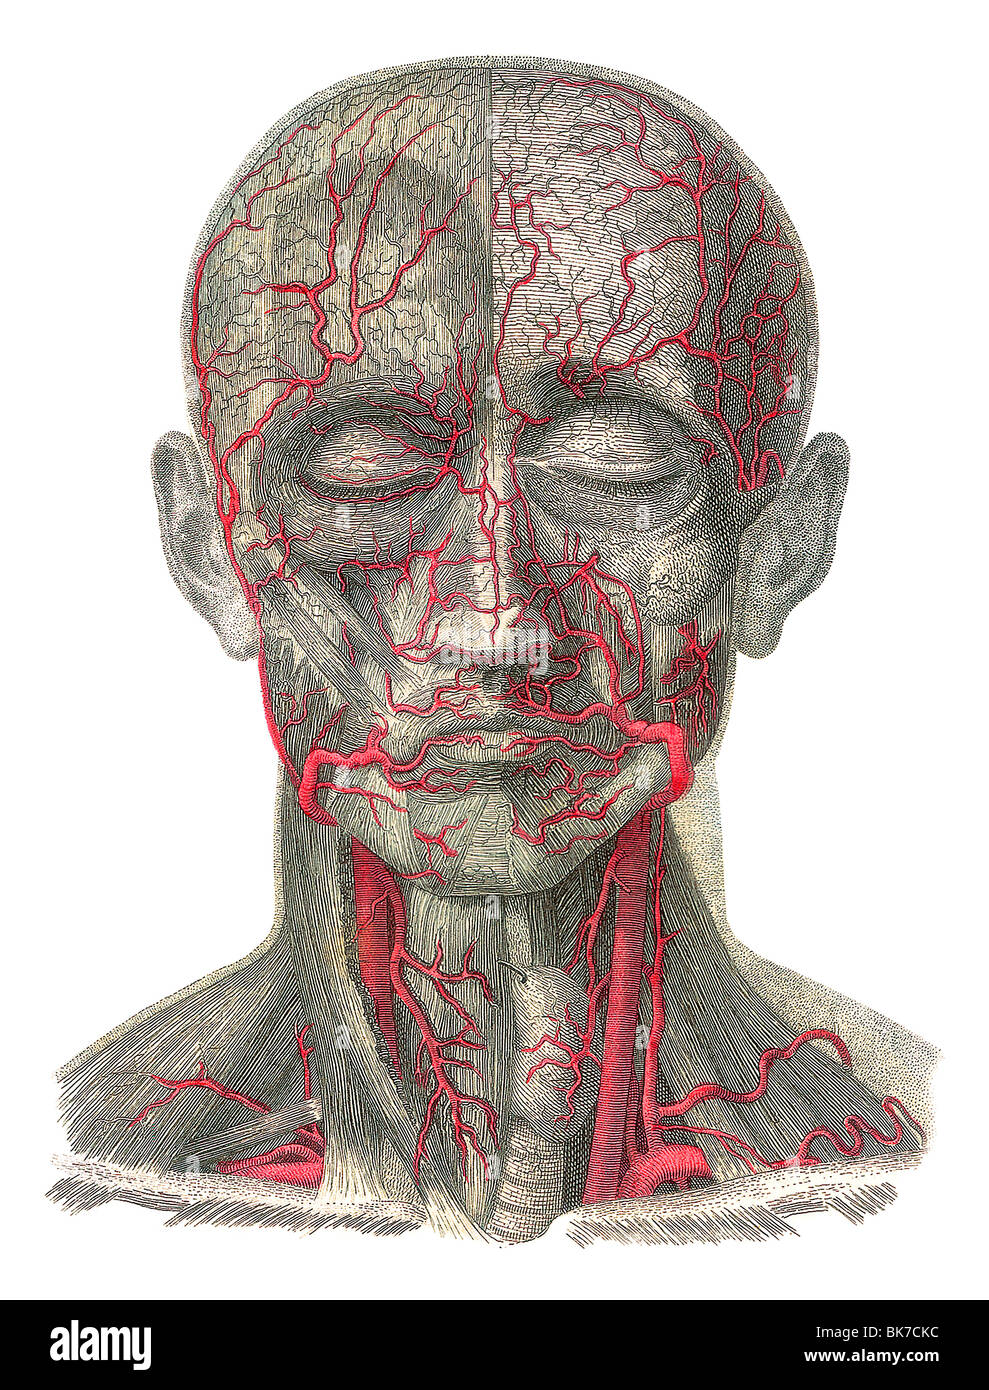 Blood Vessels Of The Head Artwork Stock Photo 29052448 Alamy